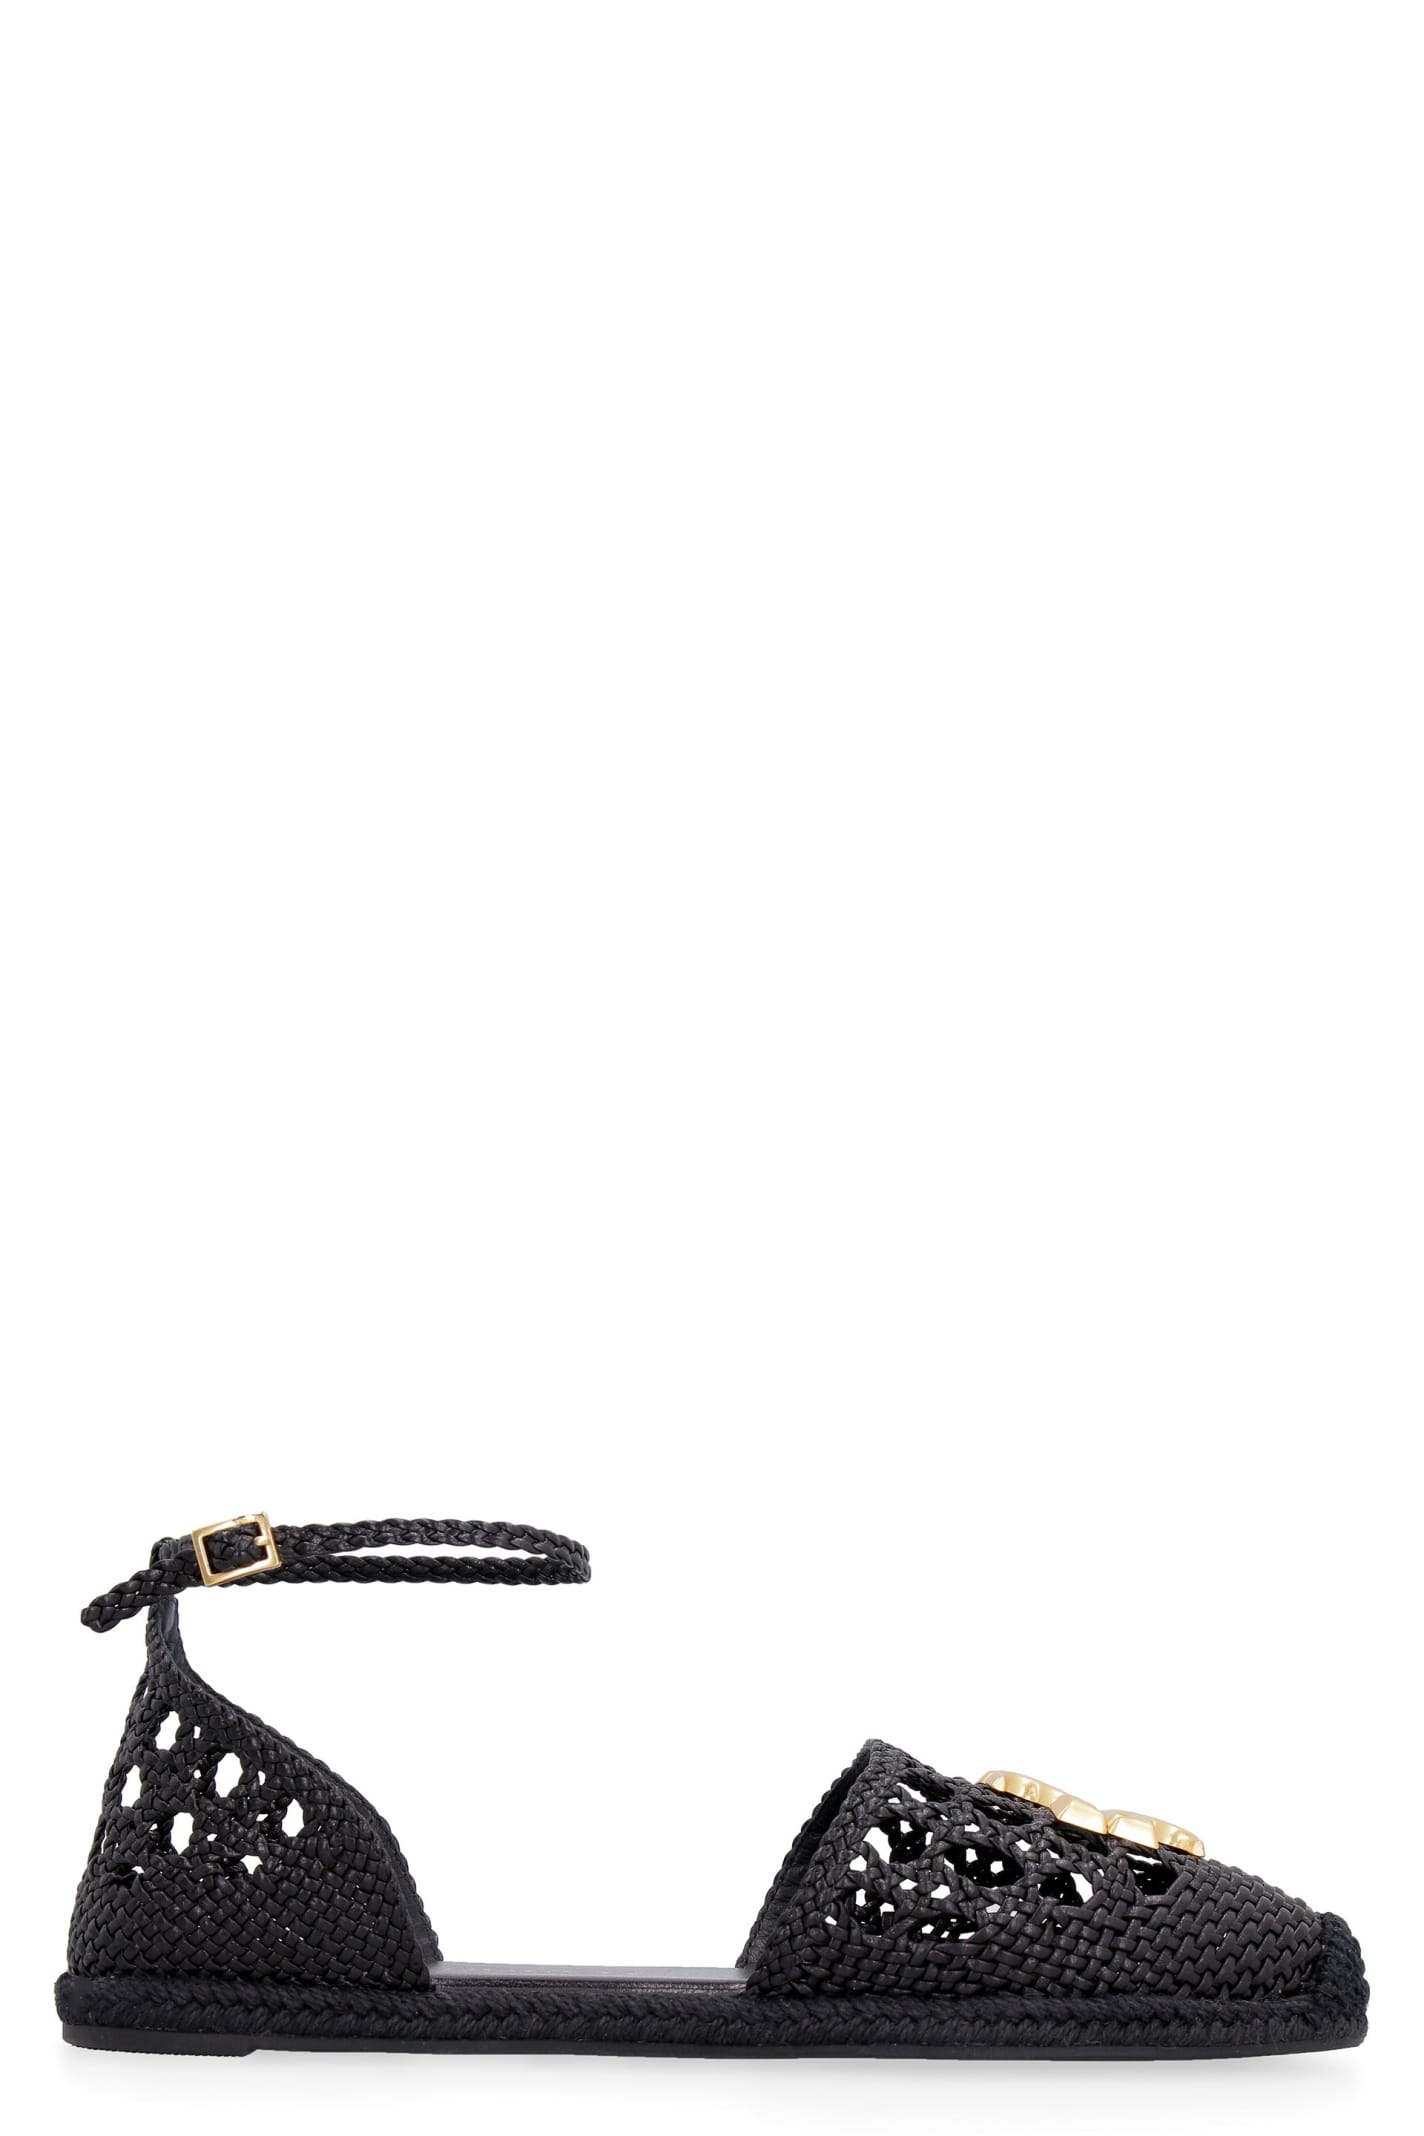 Buy Tory Burch Eleanor Flat Sandals online, shop Tory Burch shoes with free shipping